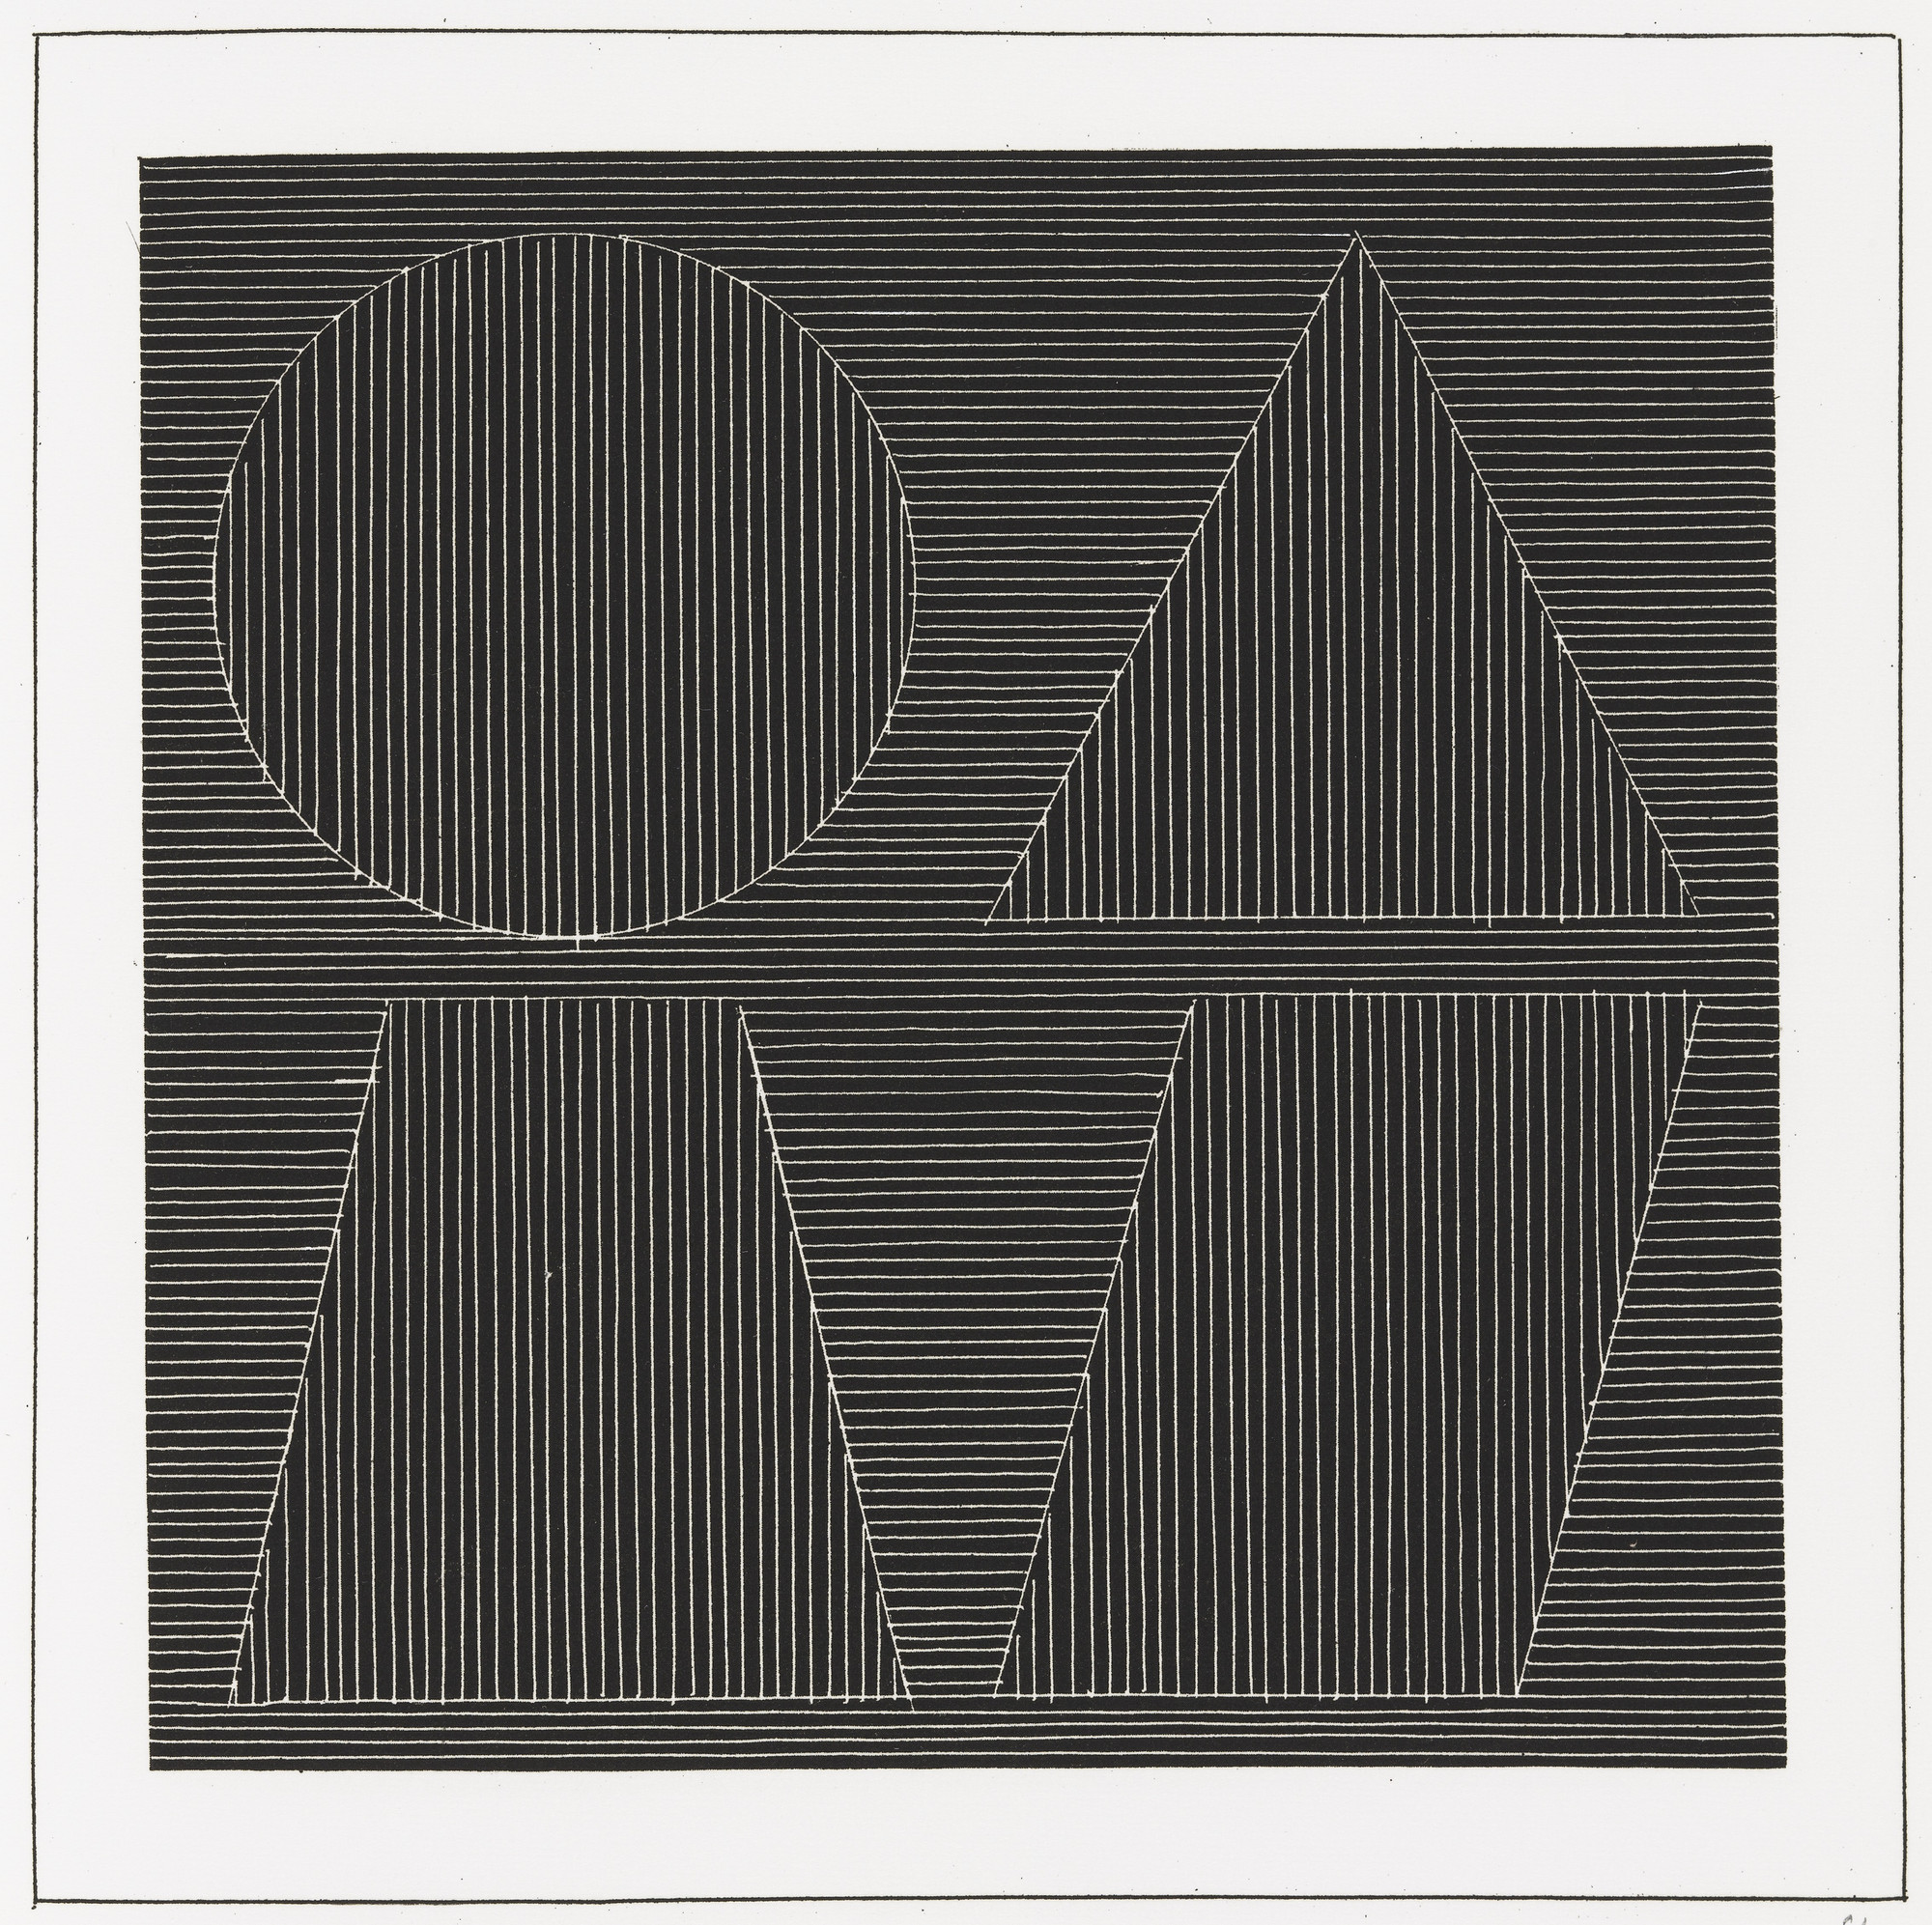 Sol LeWitt. Plate (folio 55) from Six Geometric Figures and All Their Combinations, Volume I. 1980